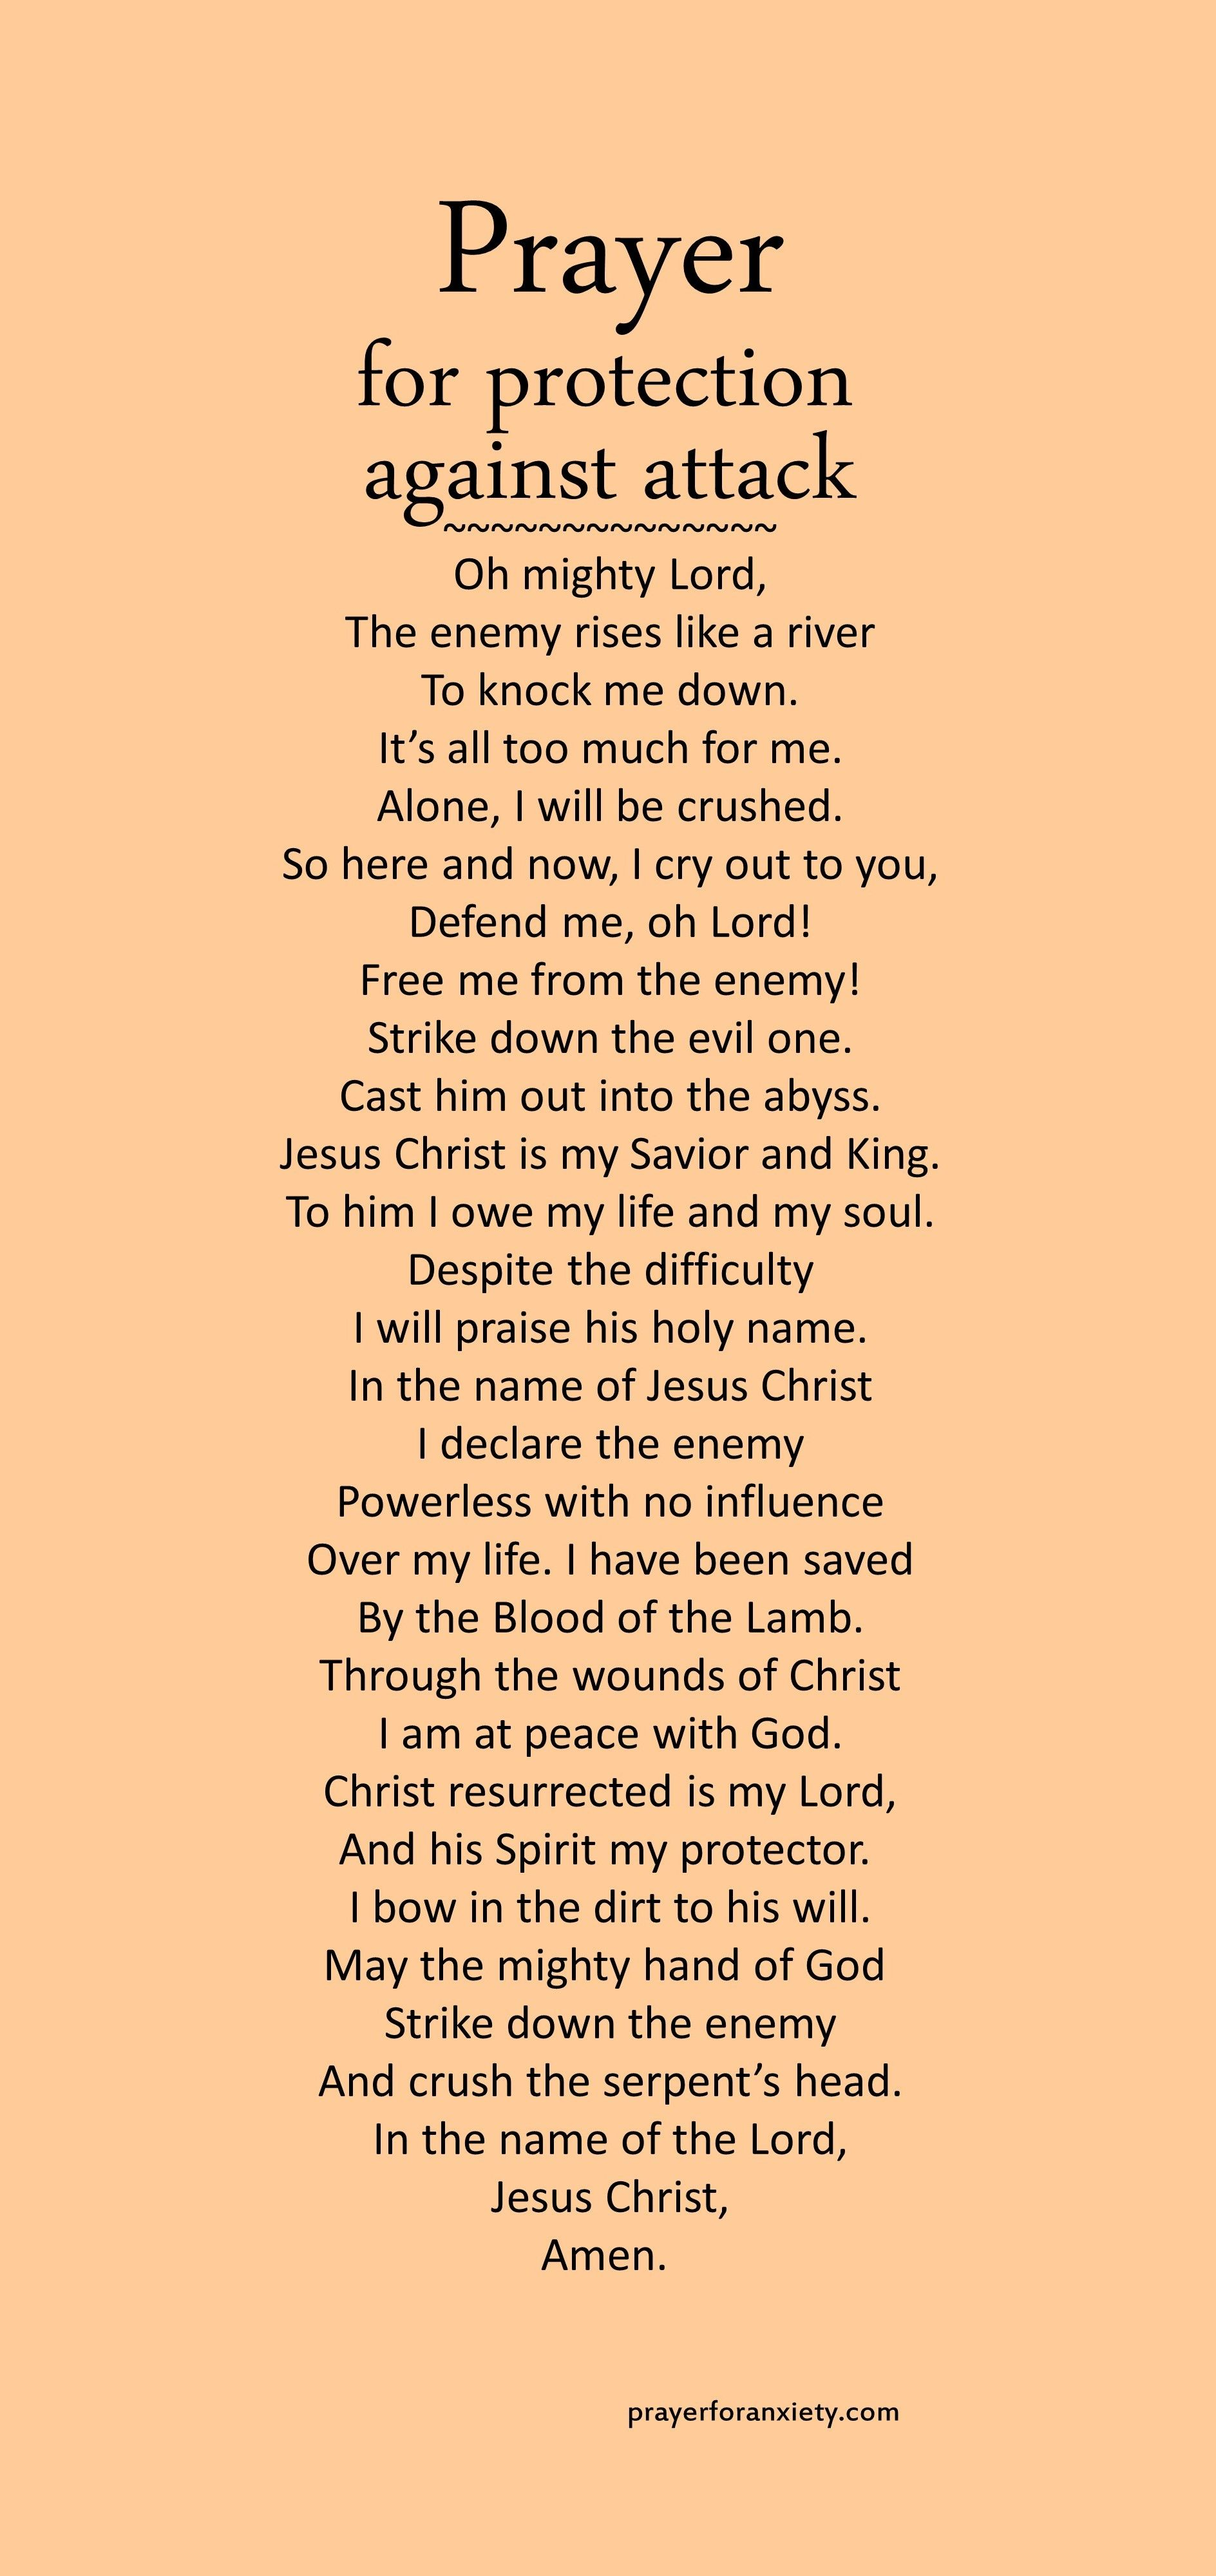 Prayer For Protection Against